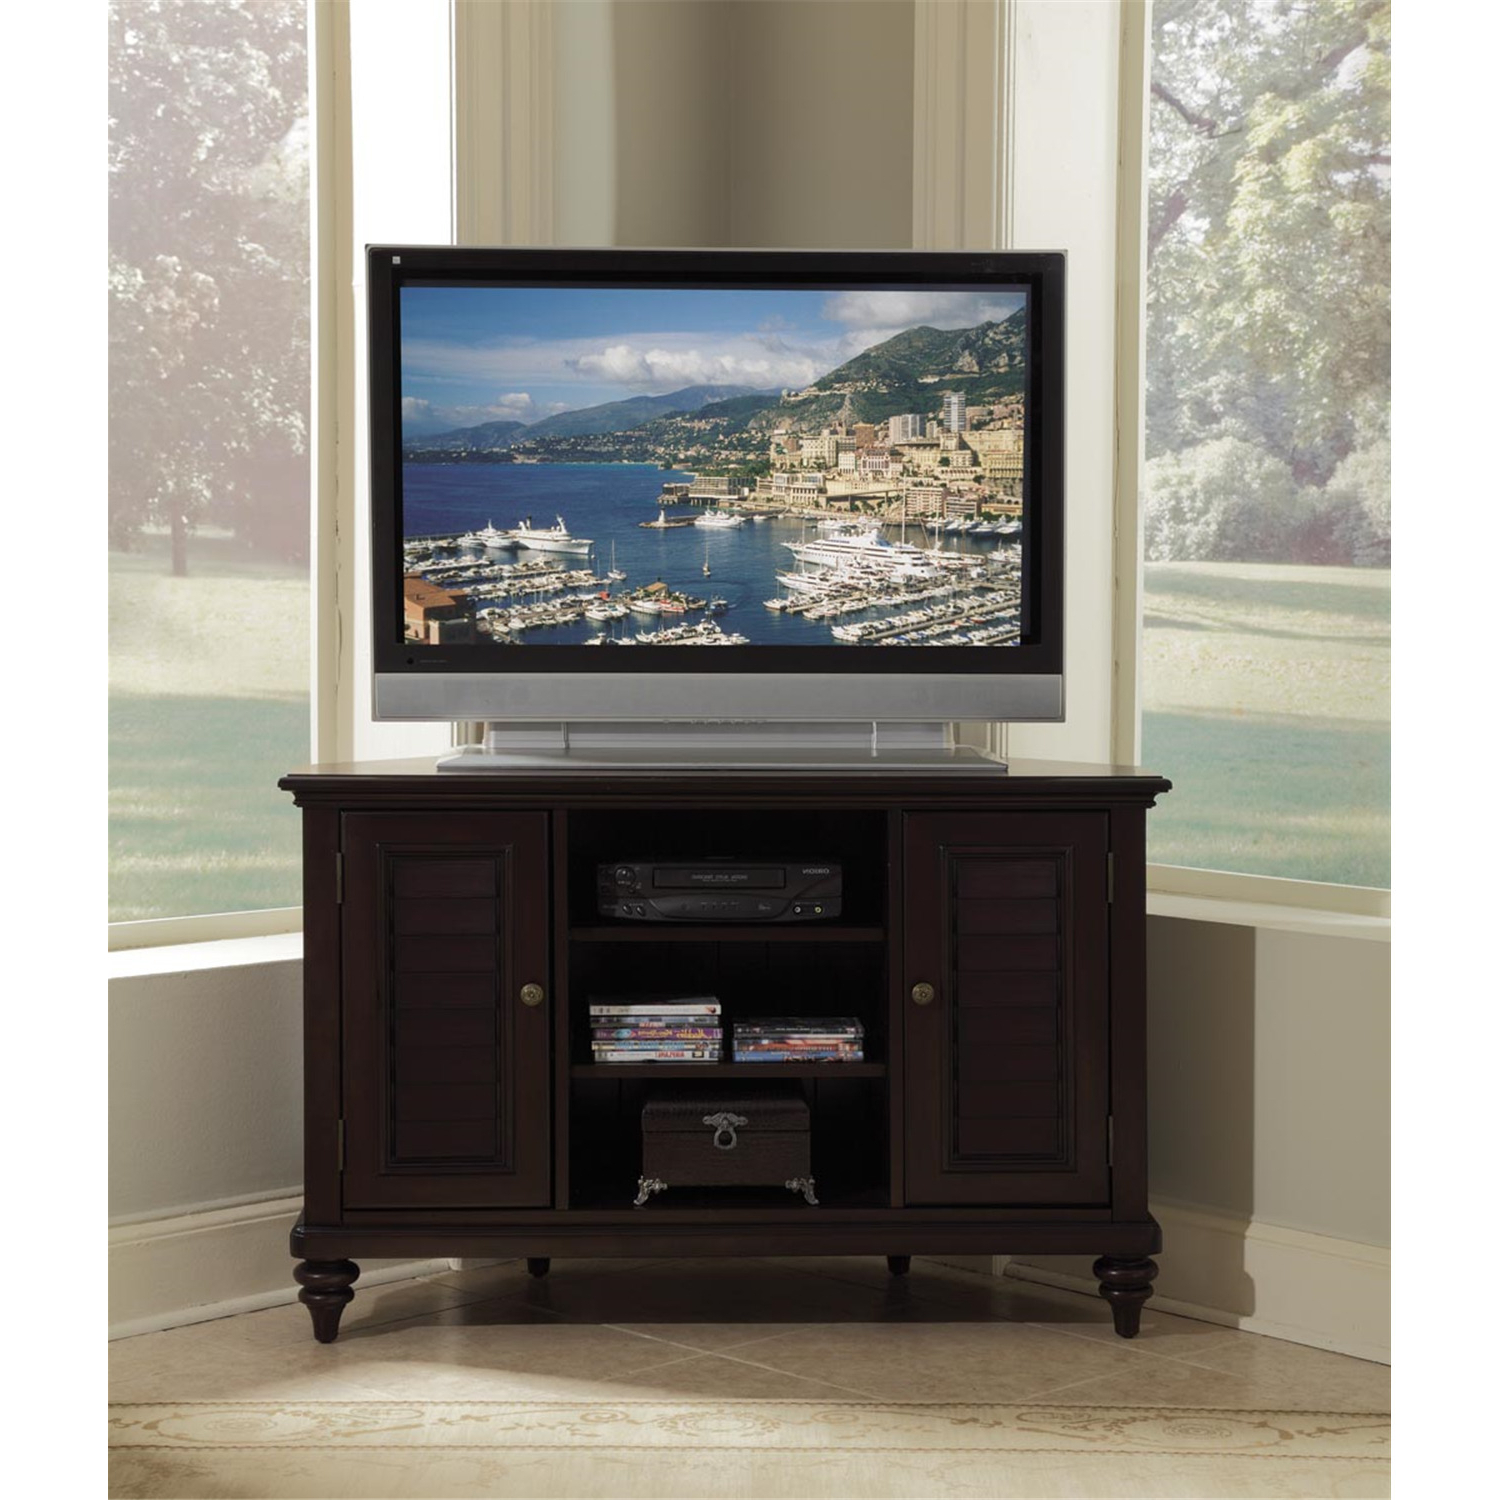 2018 Furniture, Home Goods, Appliances, Athletic Gear, Fitness Pertaining To Priya Corner Tv Stands (View 25 of 25)